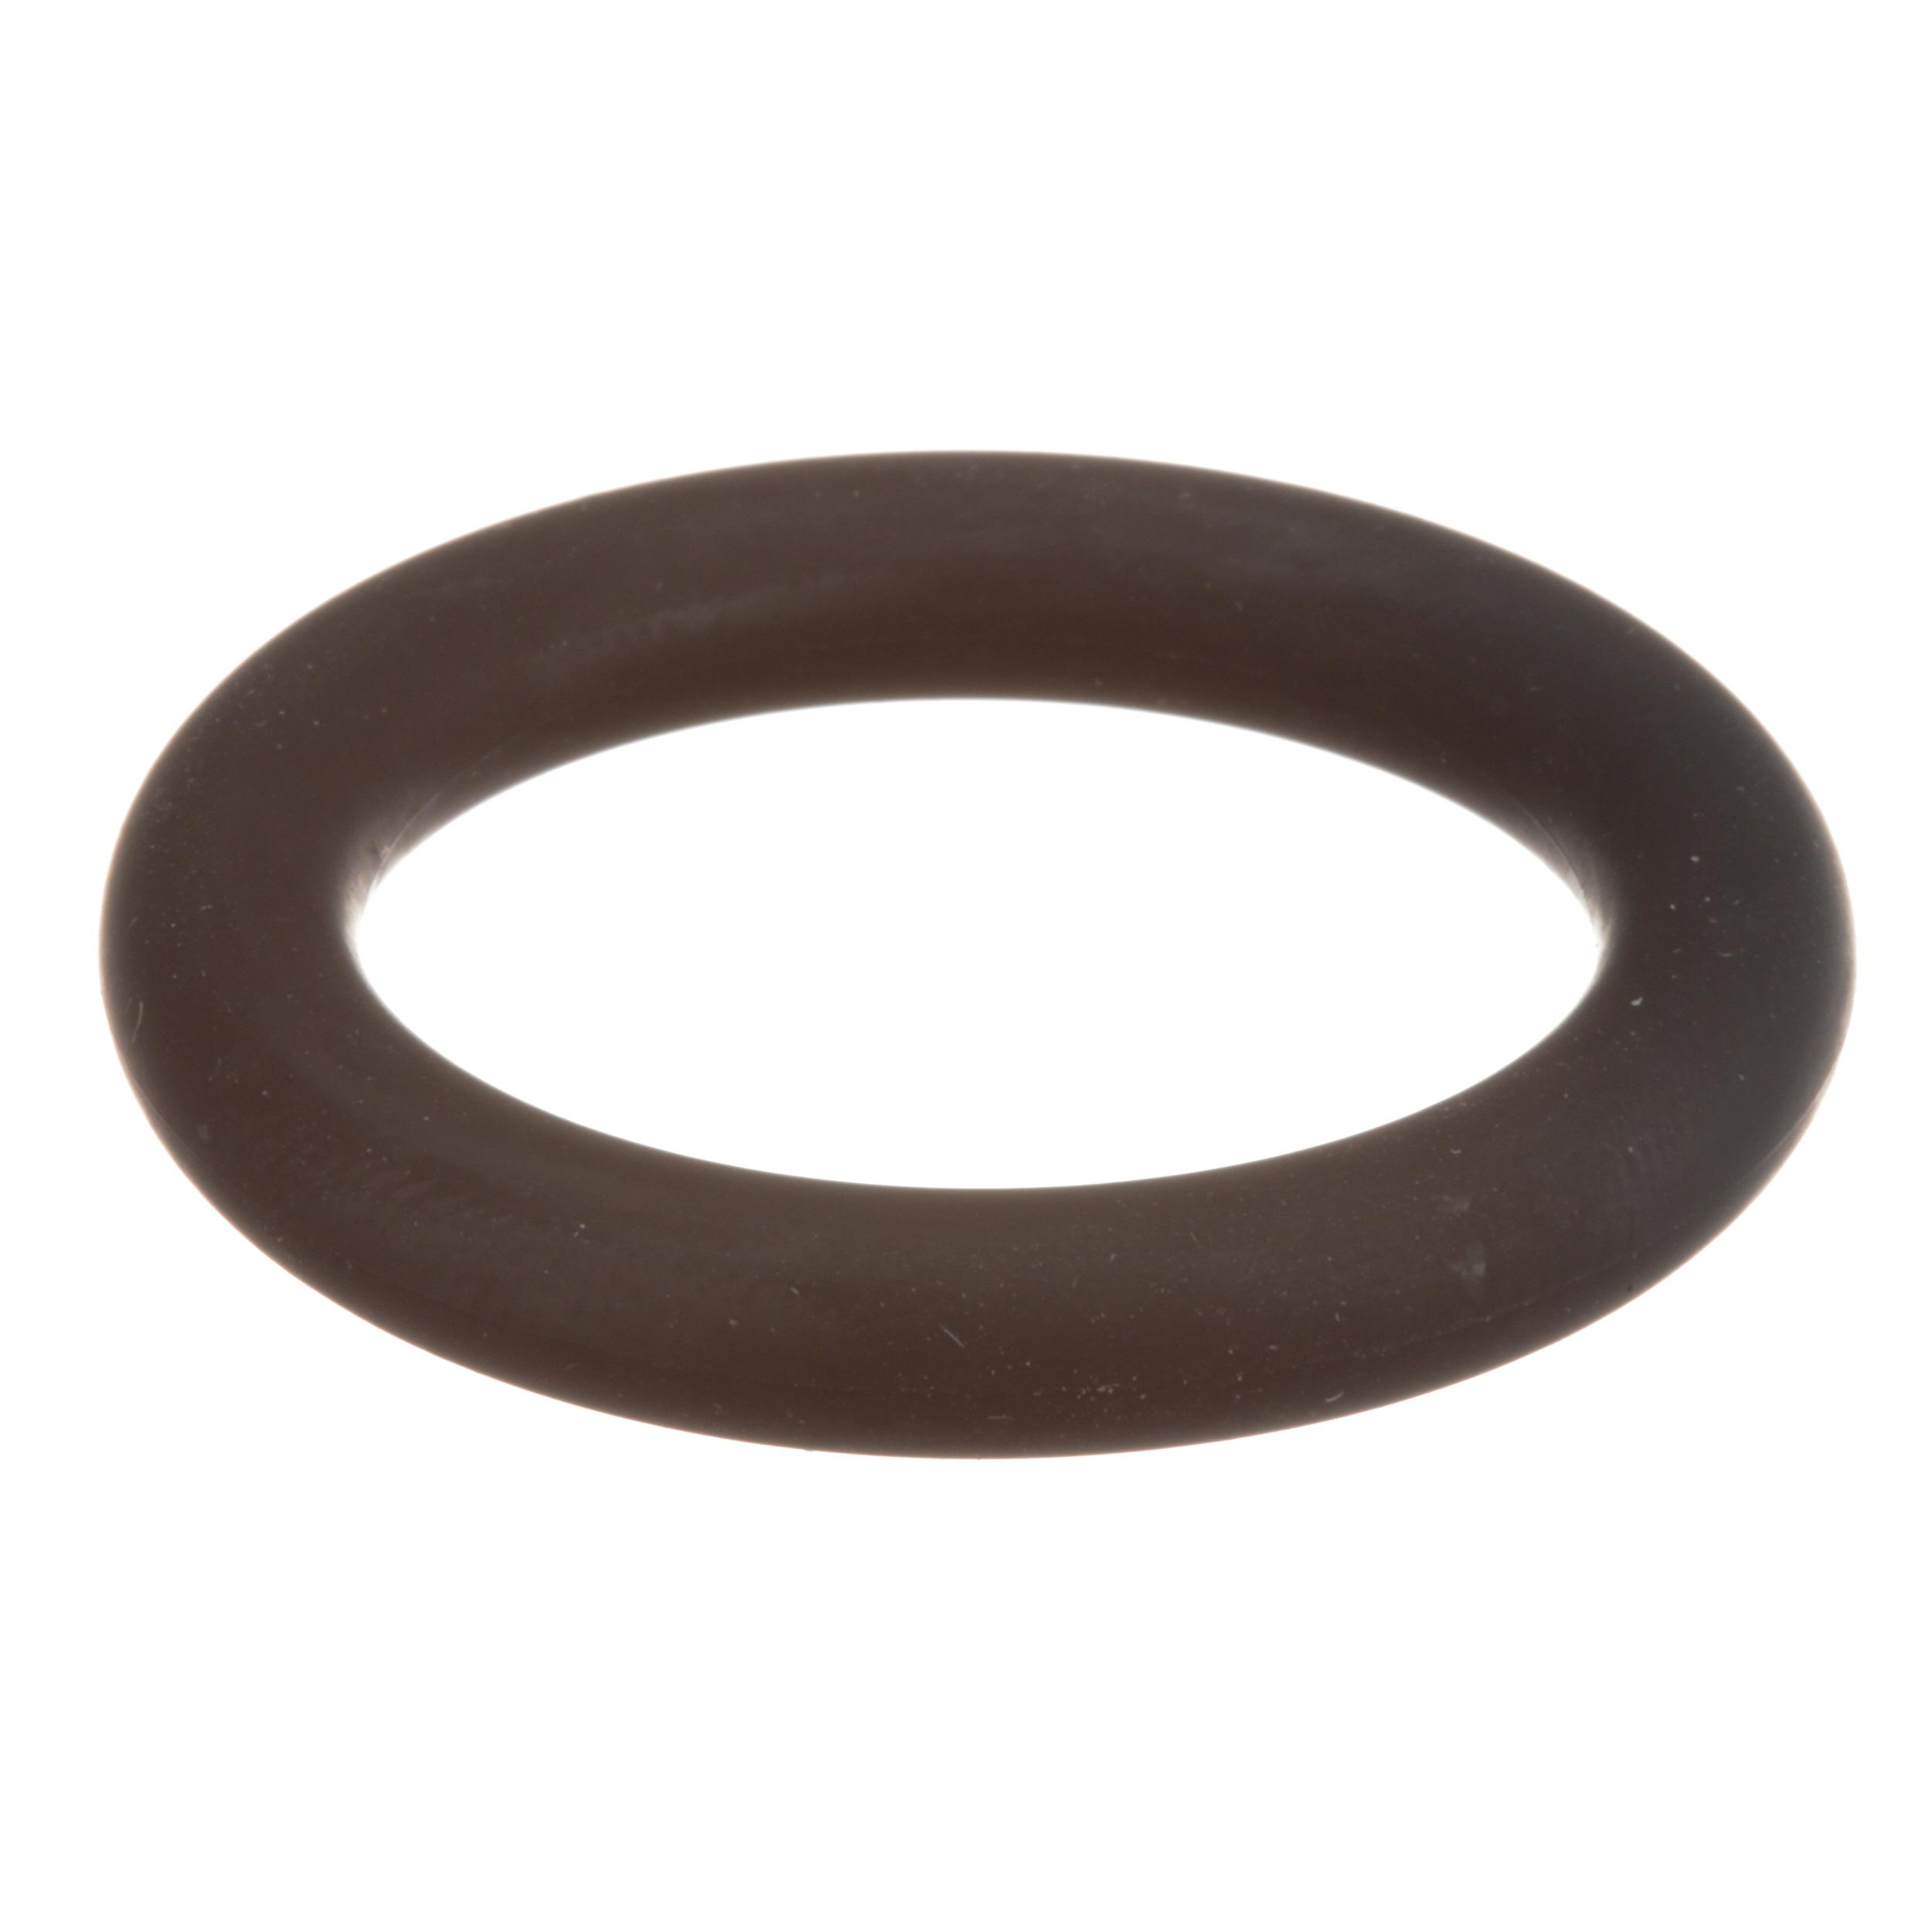 PITCO O-RING VITON 1 IN ID X 1.375 IN OD